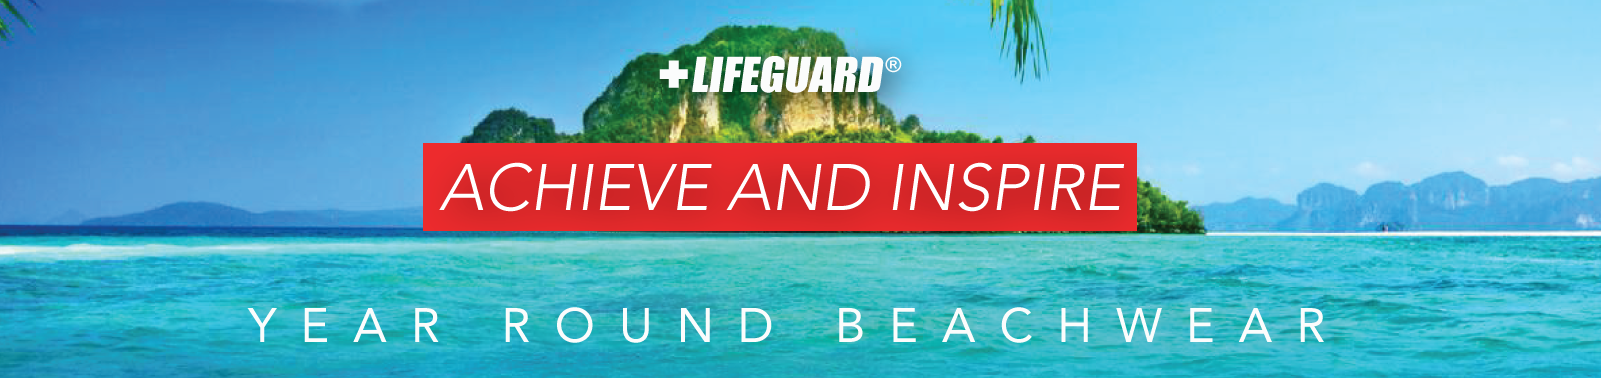 Beach Lifeguard Achieve and inspire - Your round beachwear